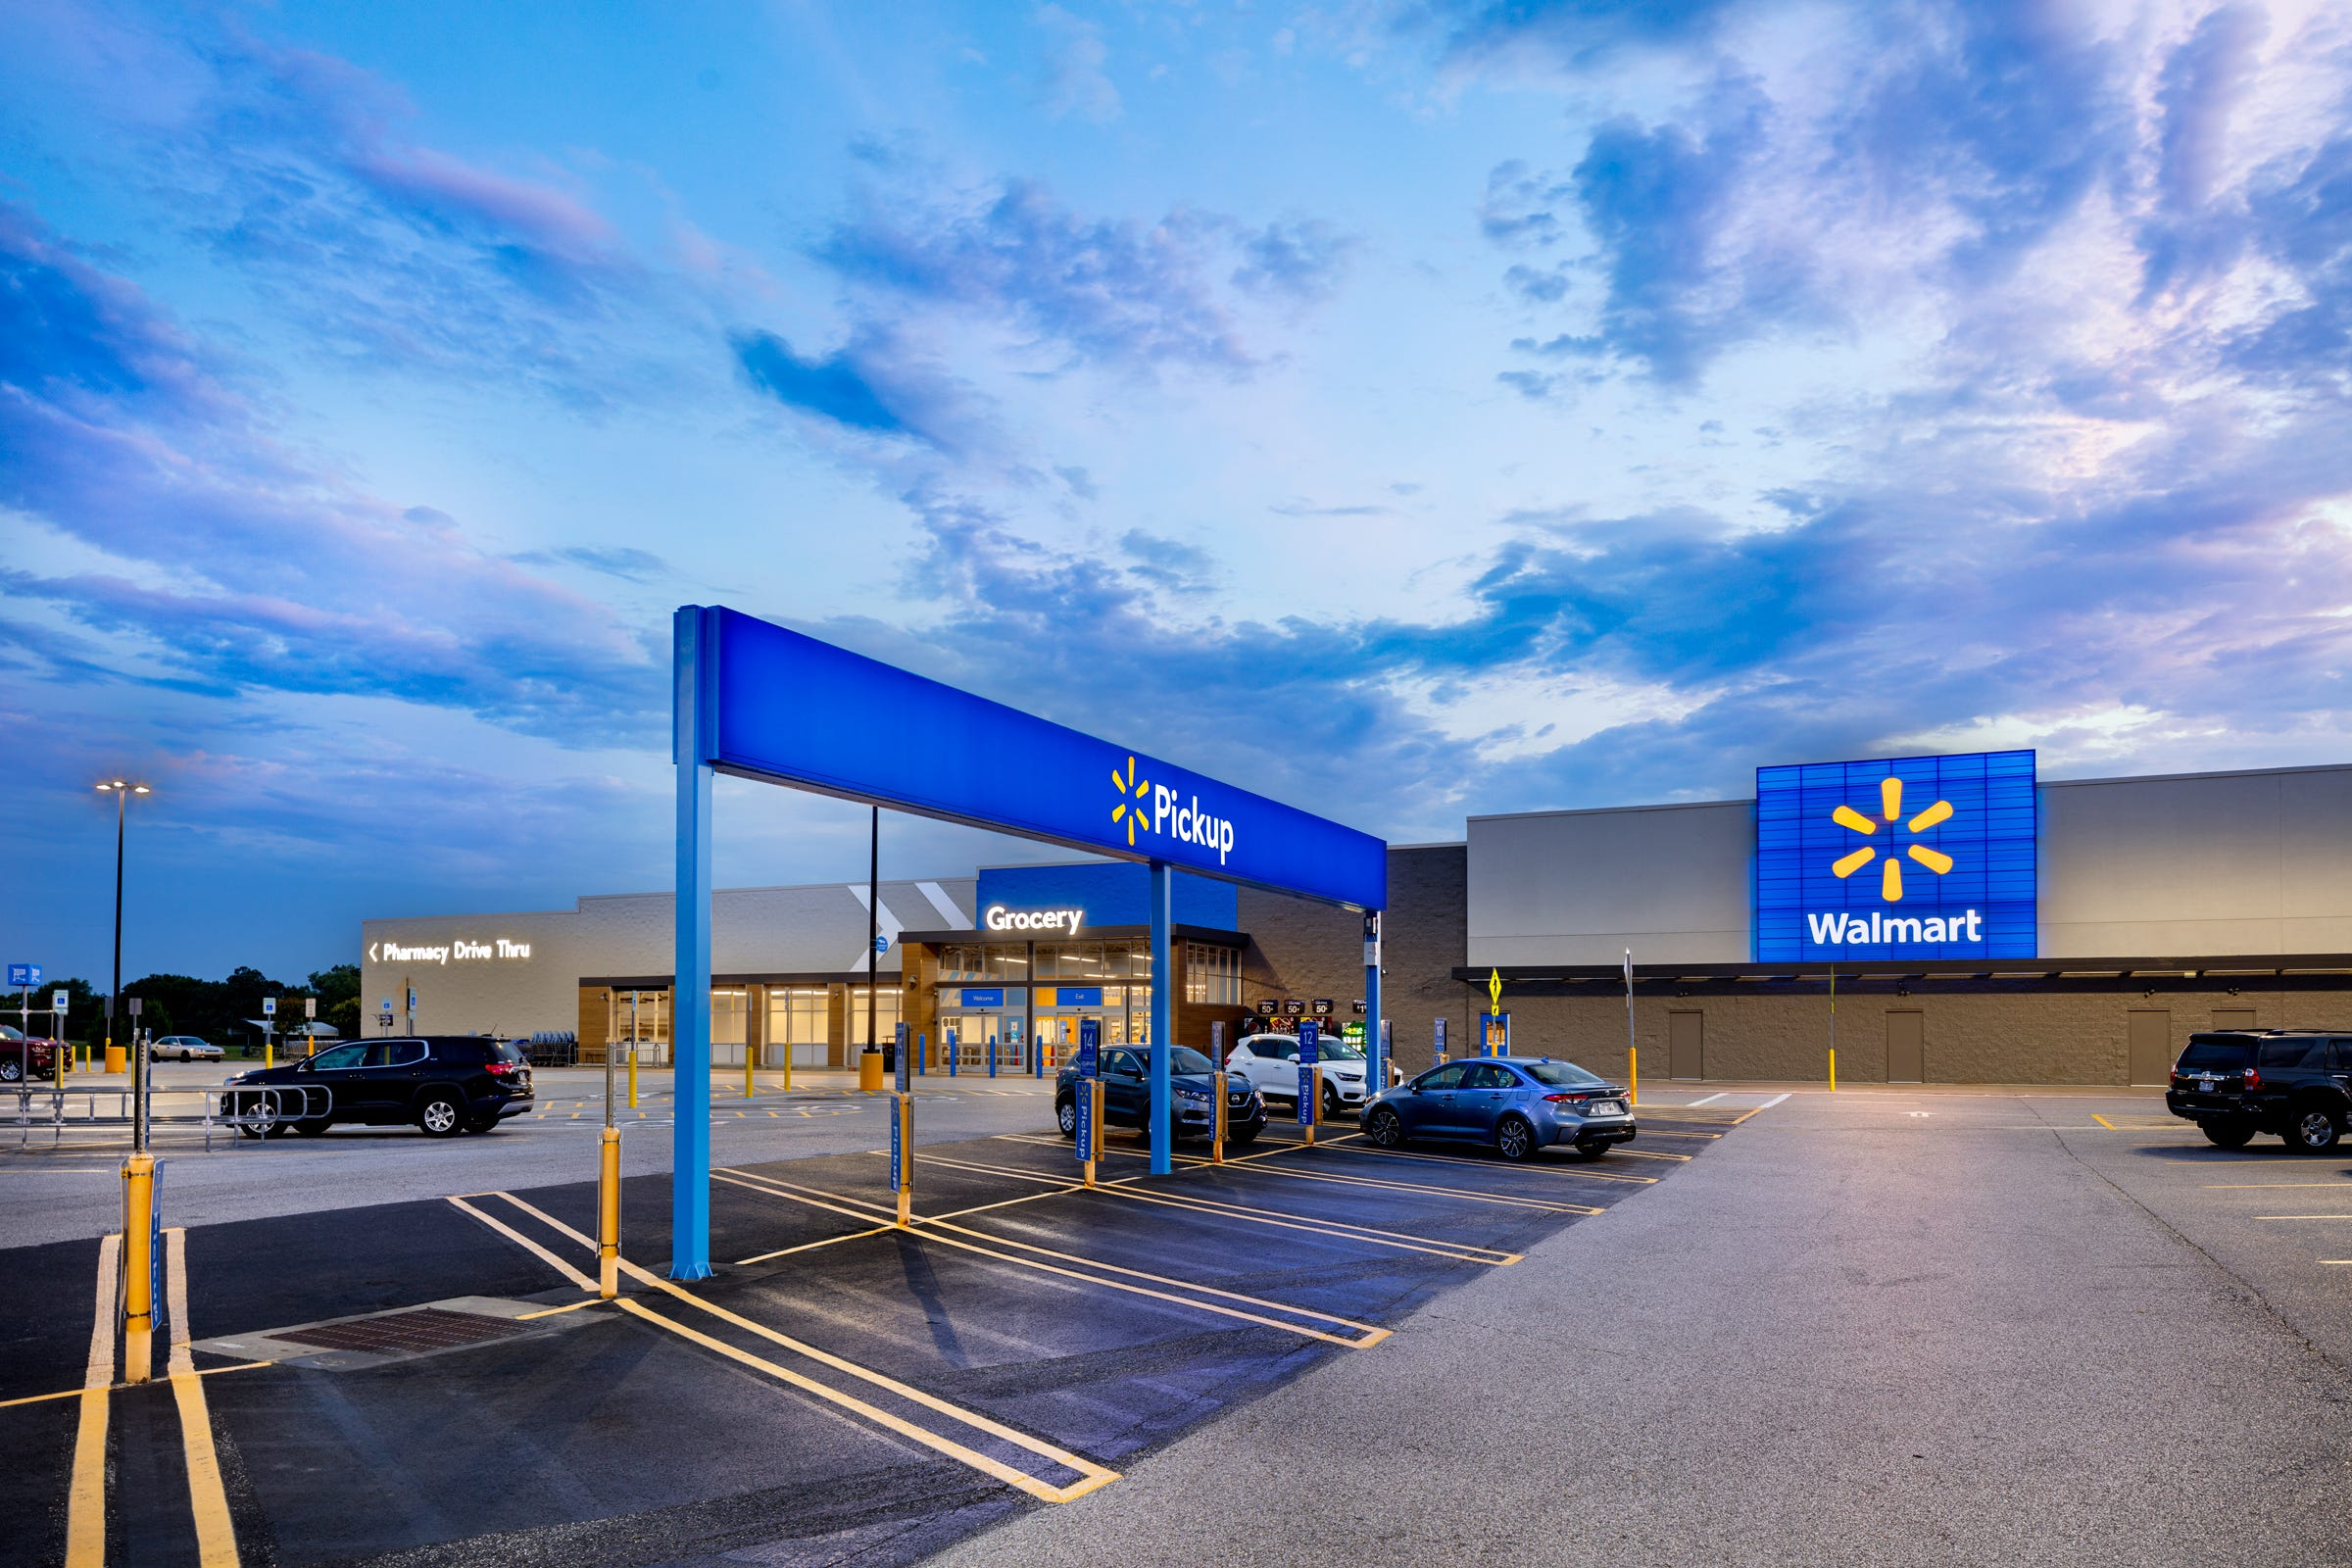 Walmart store design to create 'seamless' omni shopping experience